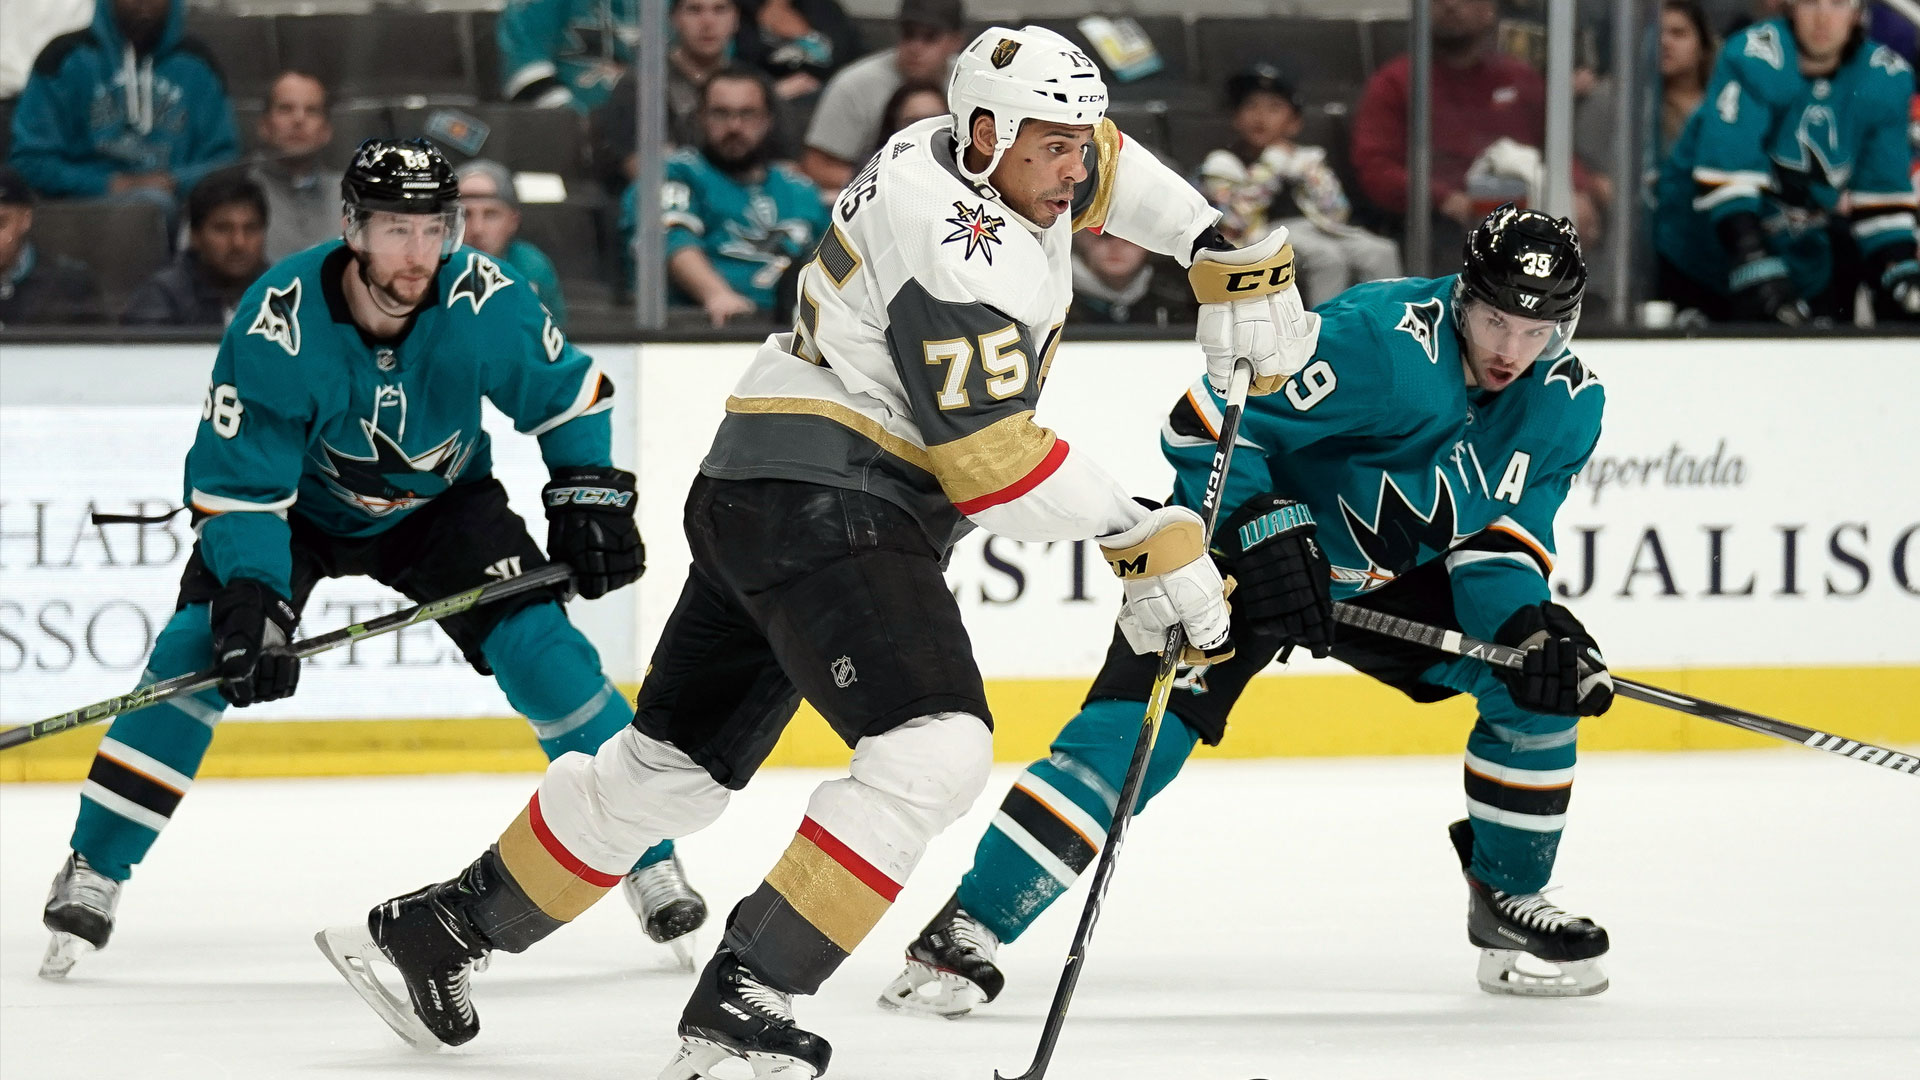 Logan Couture scores twice, but Sharks routed by Vegas at home